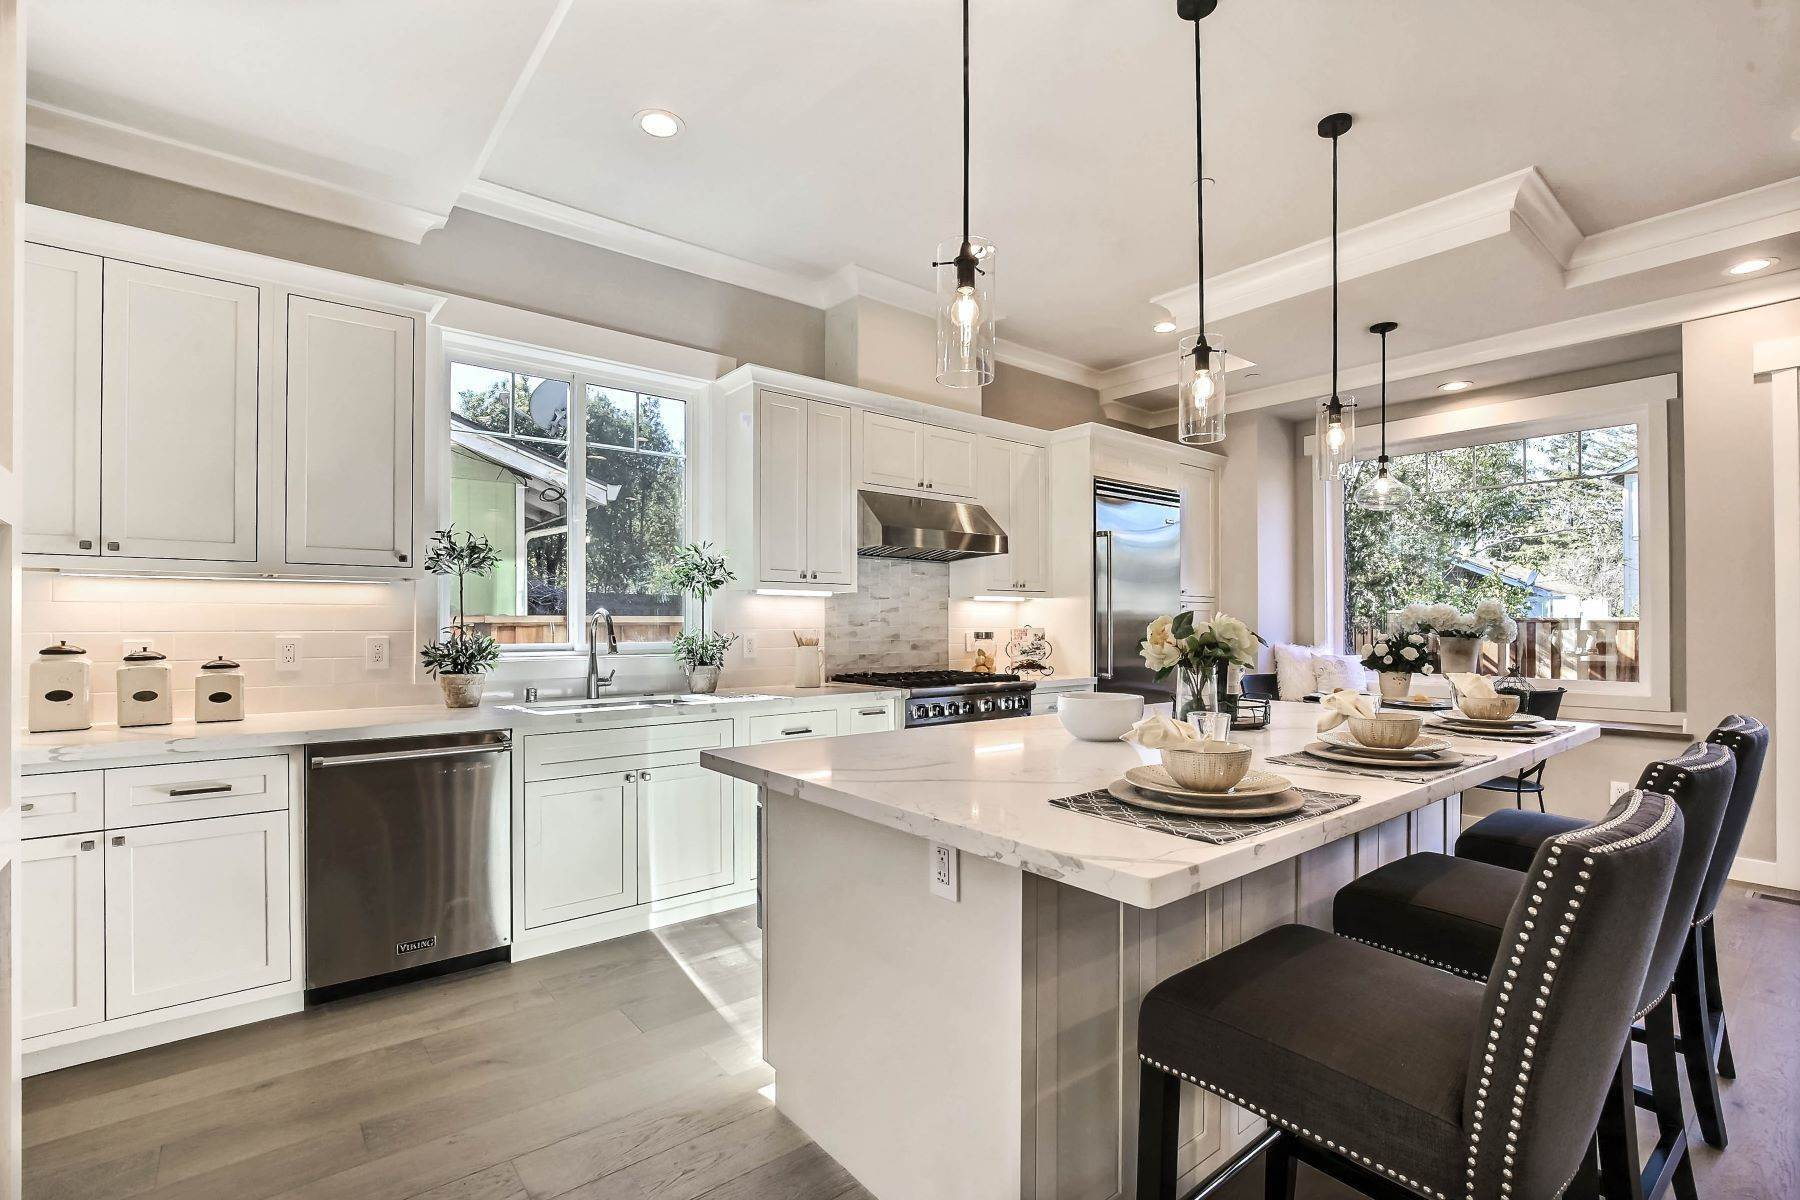 7. Single Family Homes for Sale at Brand New Menlo Park Home 611 12th Avenue Menlo Park, California 94025 United States